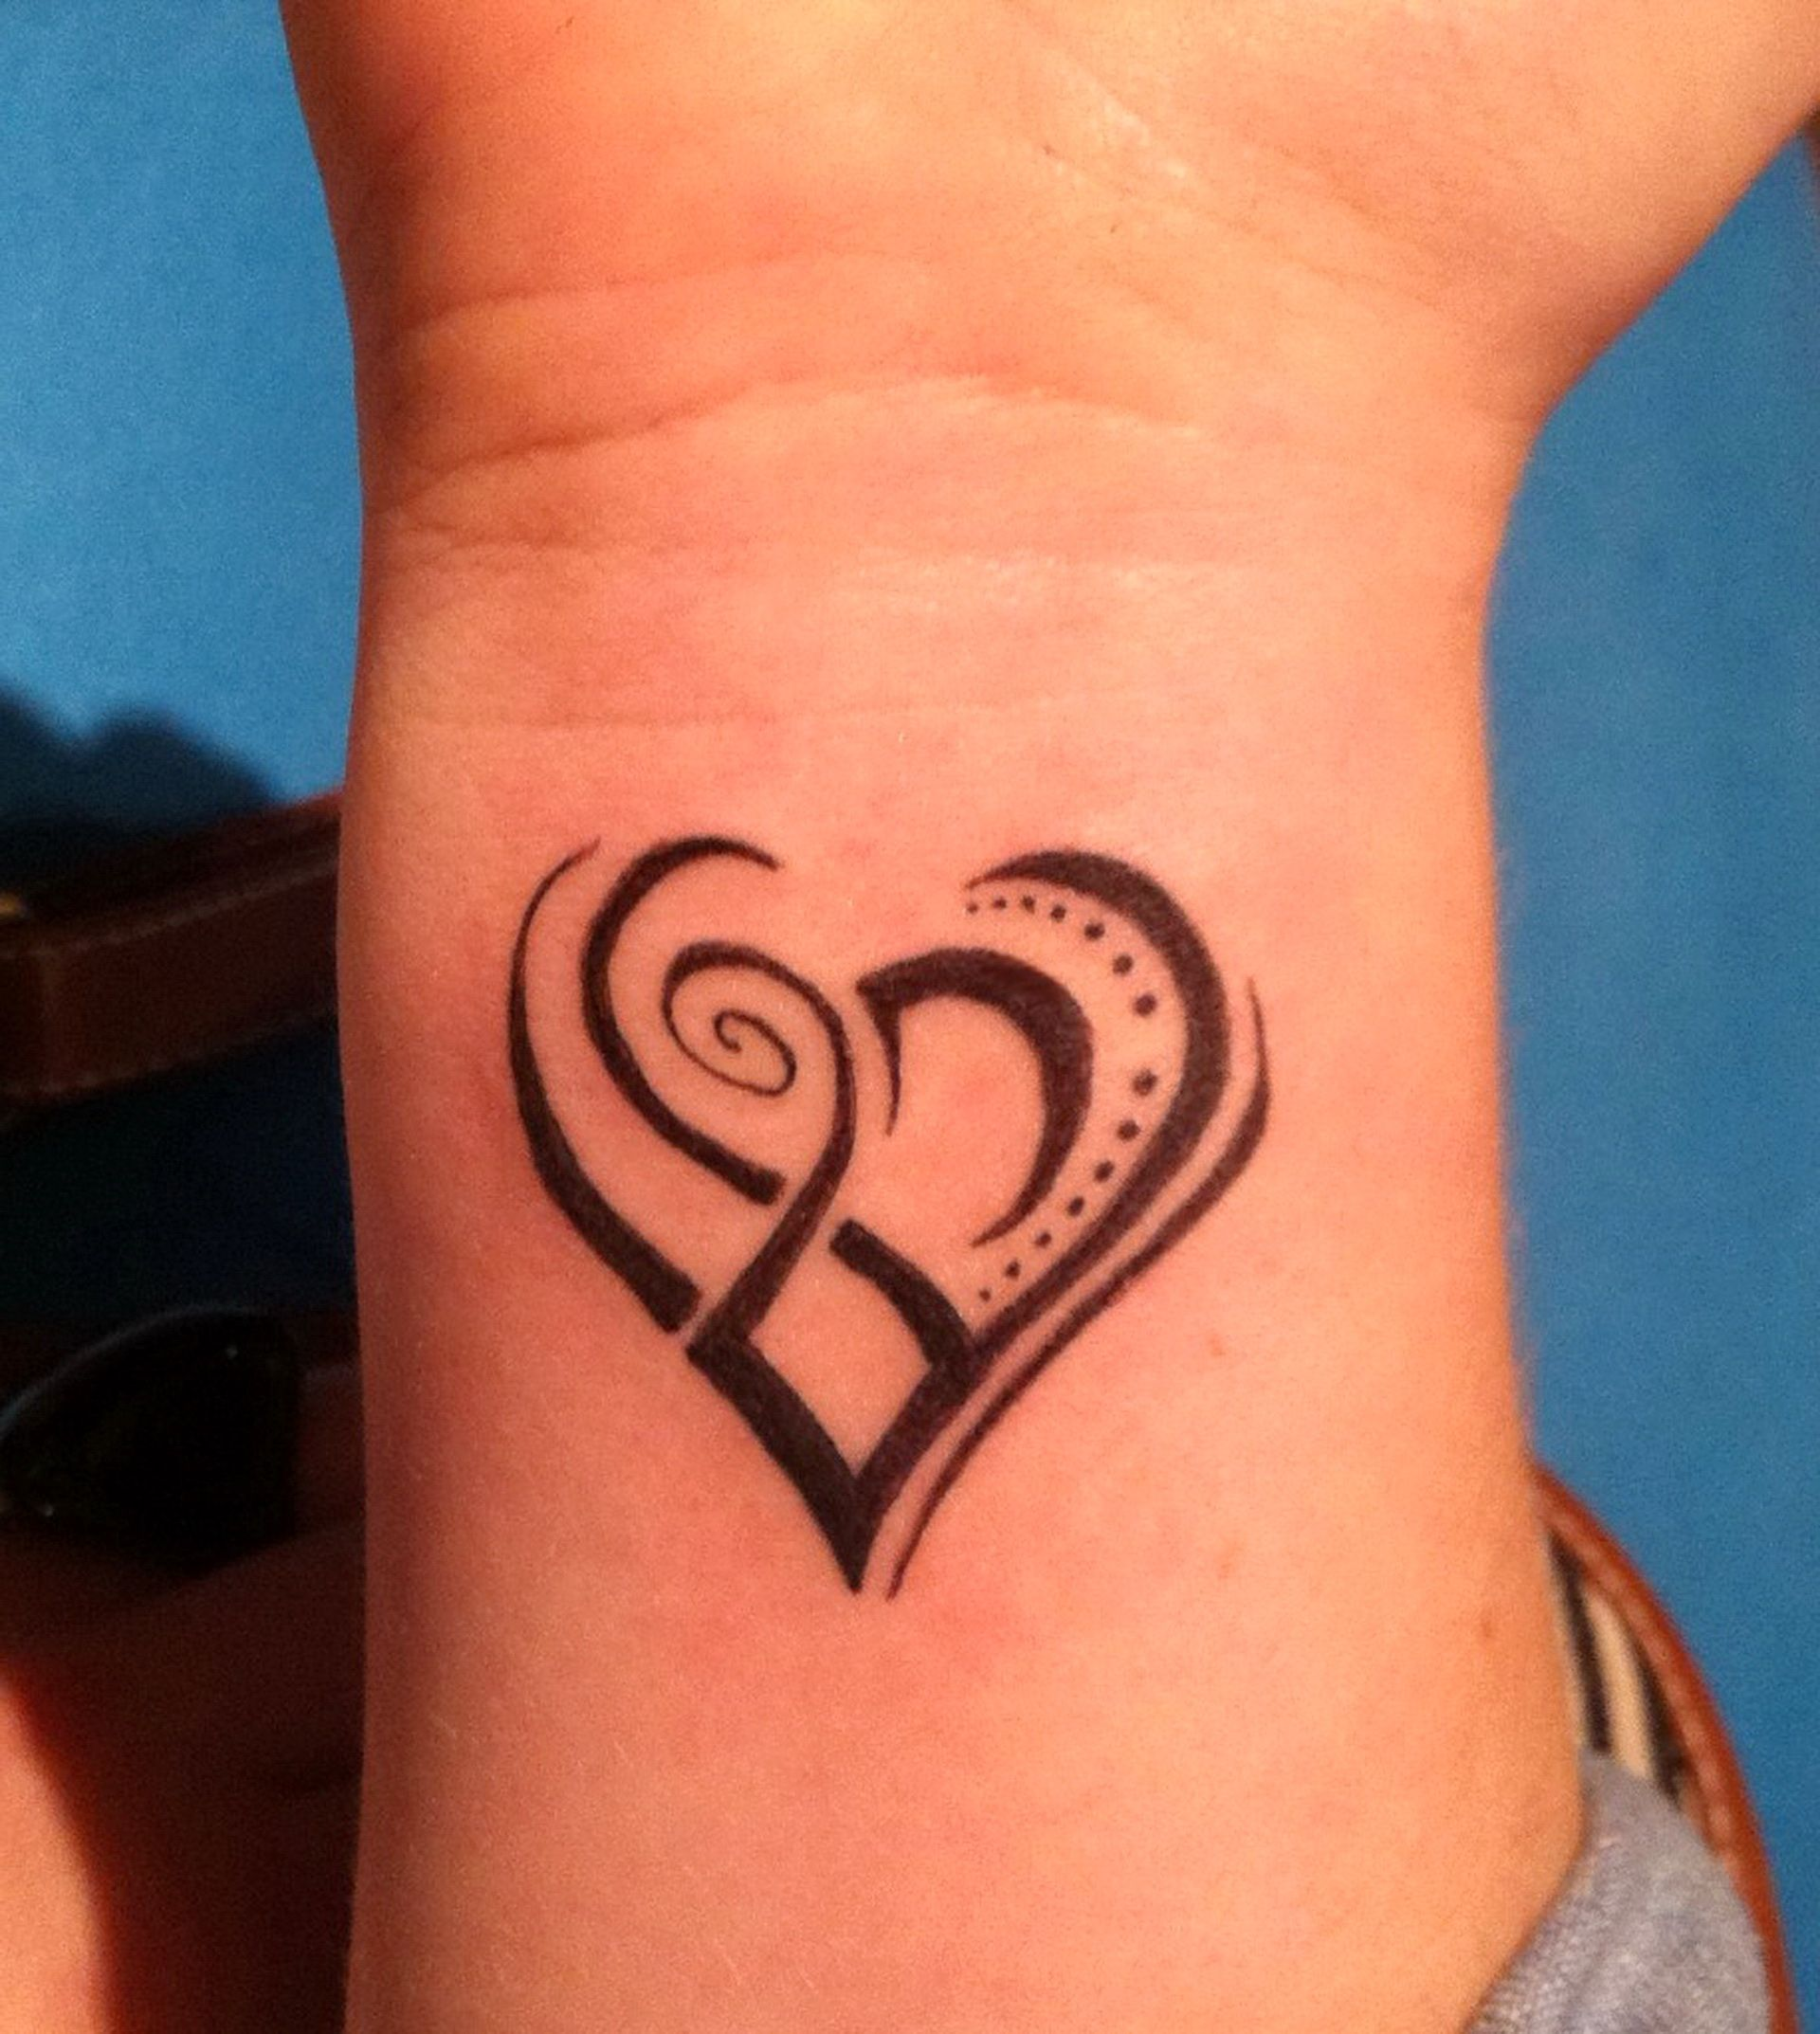 Awesome Tribal Tattoo Art Design Ideas heart tattoo for